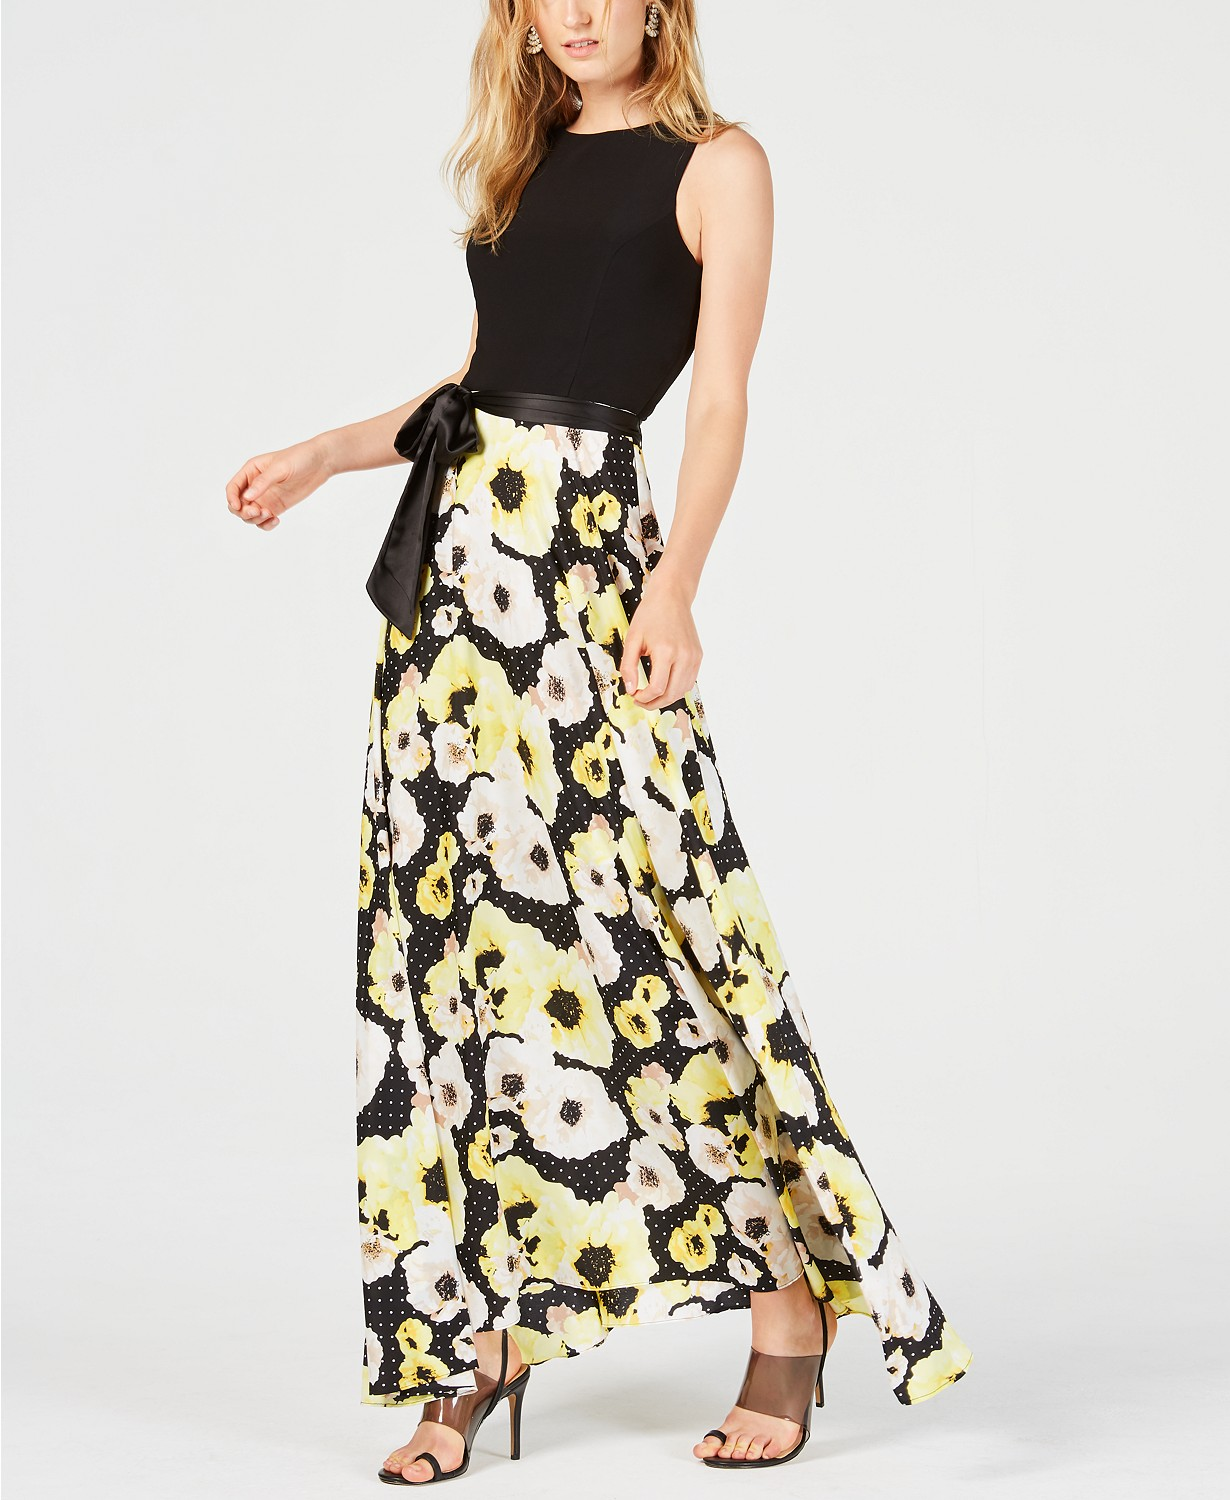 maxi length petite dress